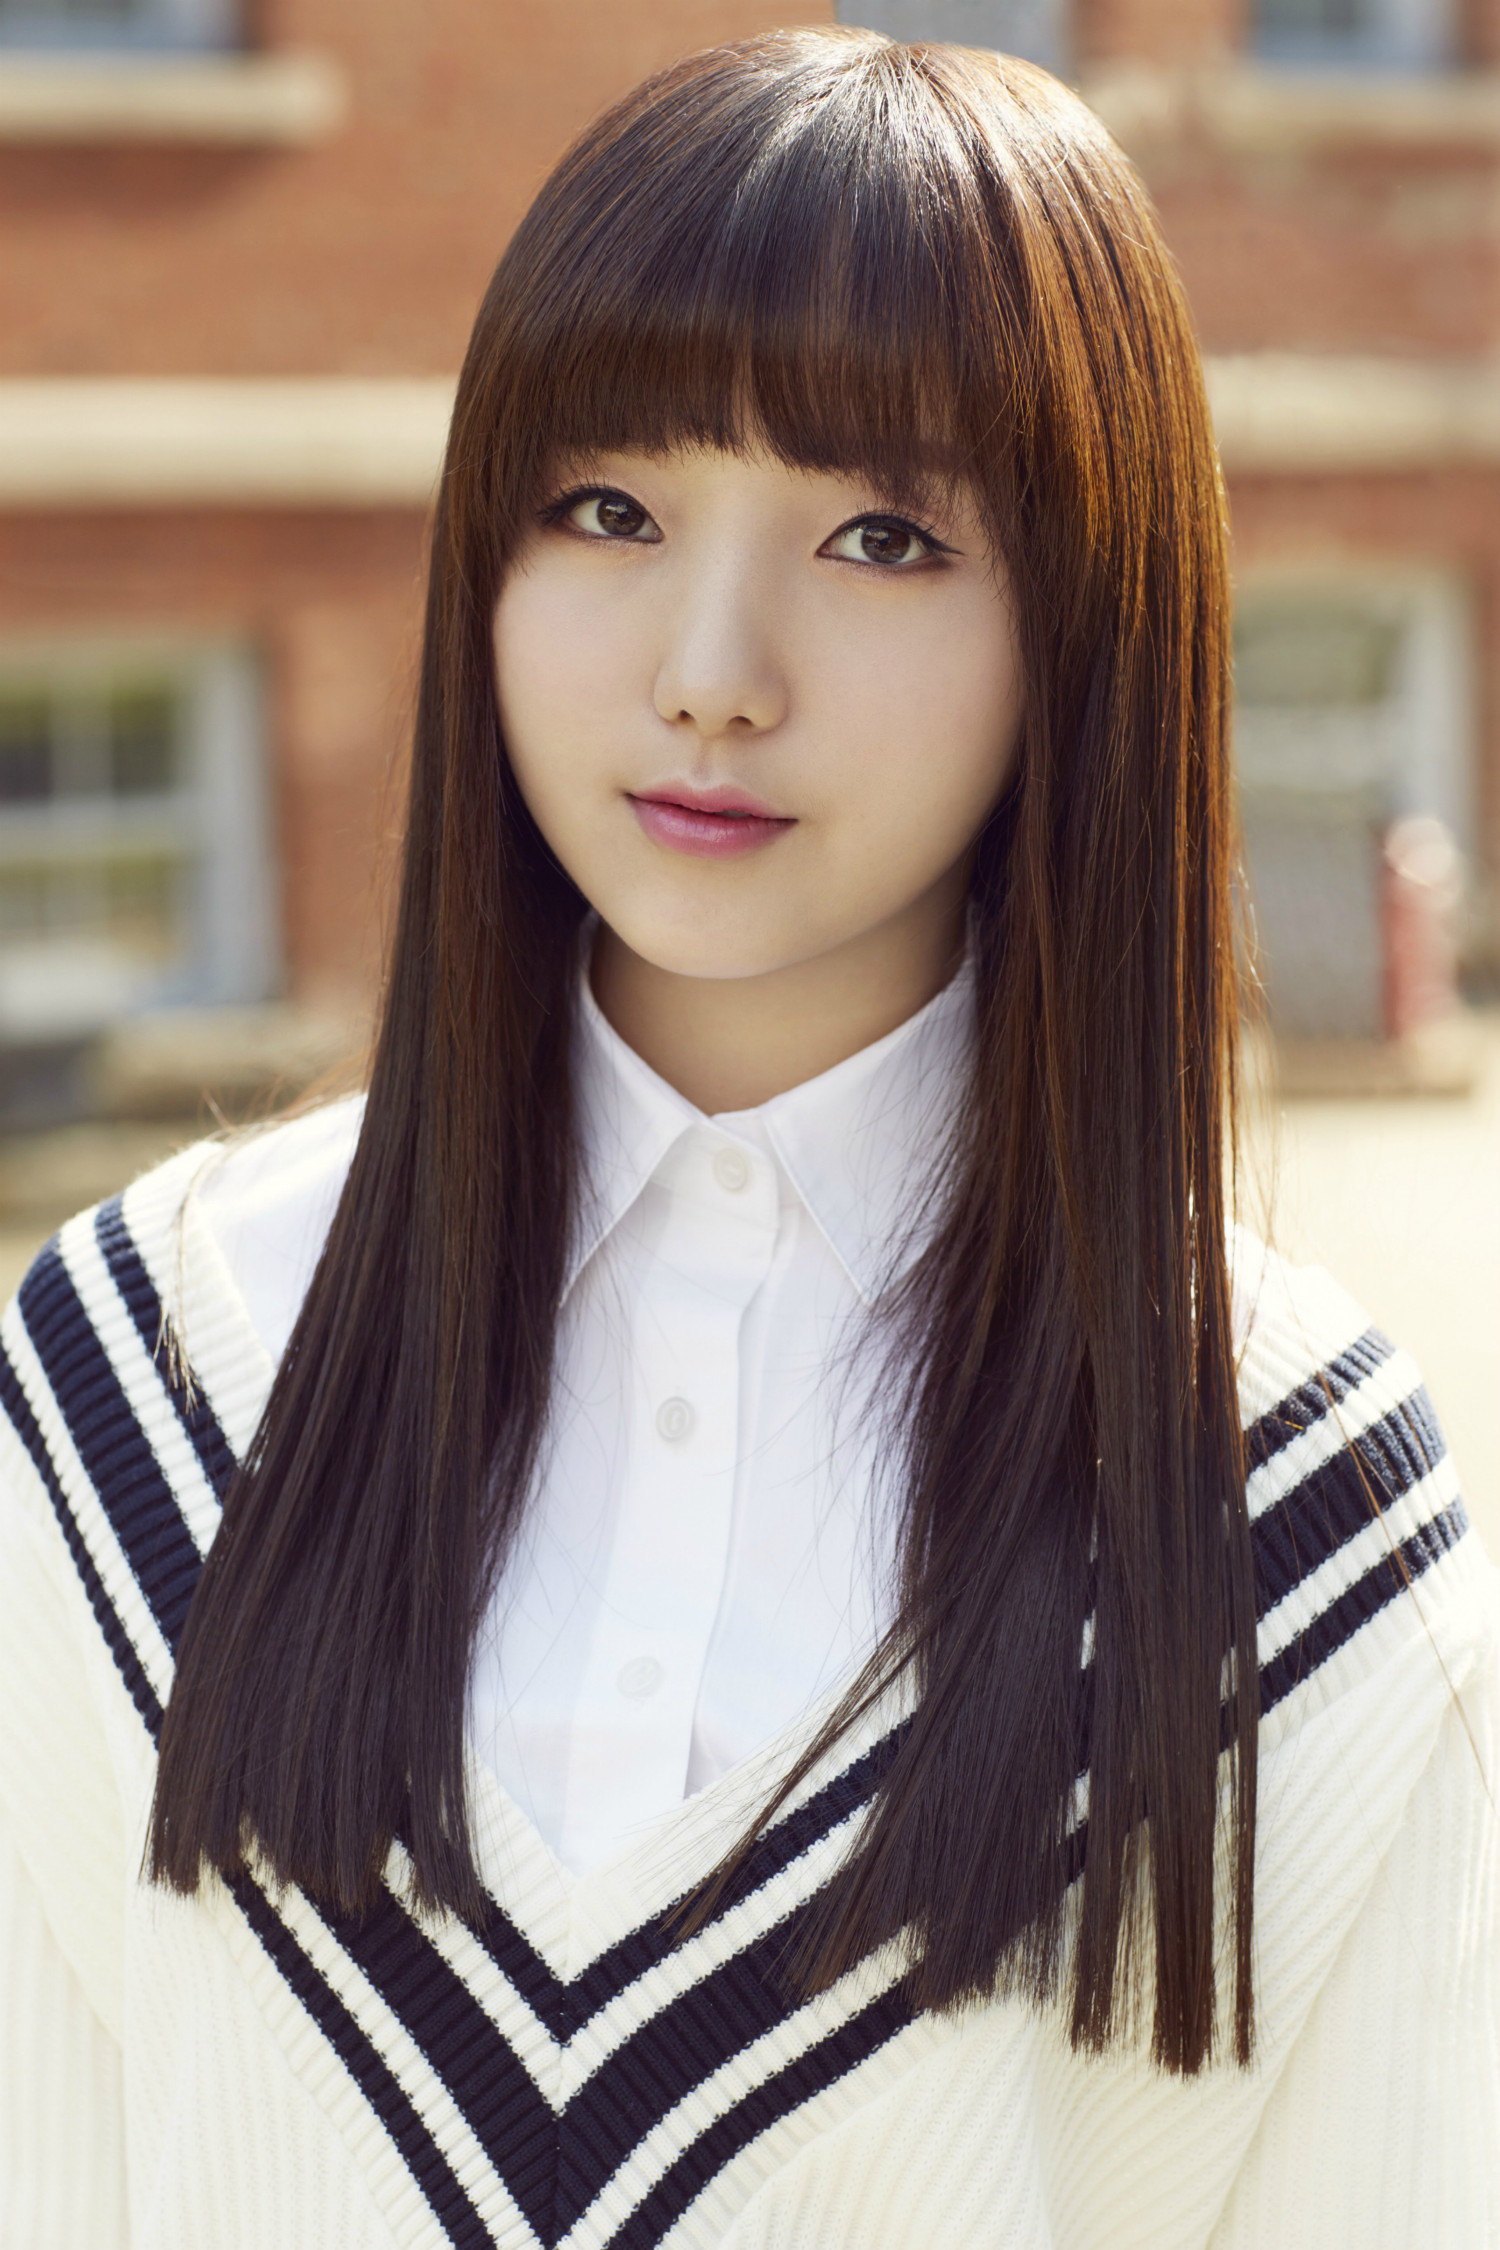 lovelyz kei lovelyz photo 37782628 fanpop rh fanpop com